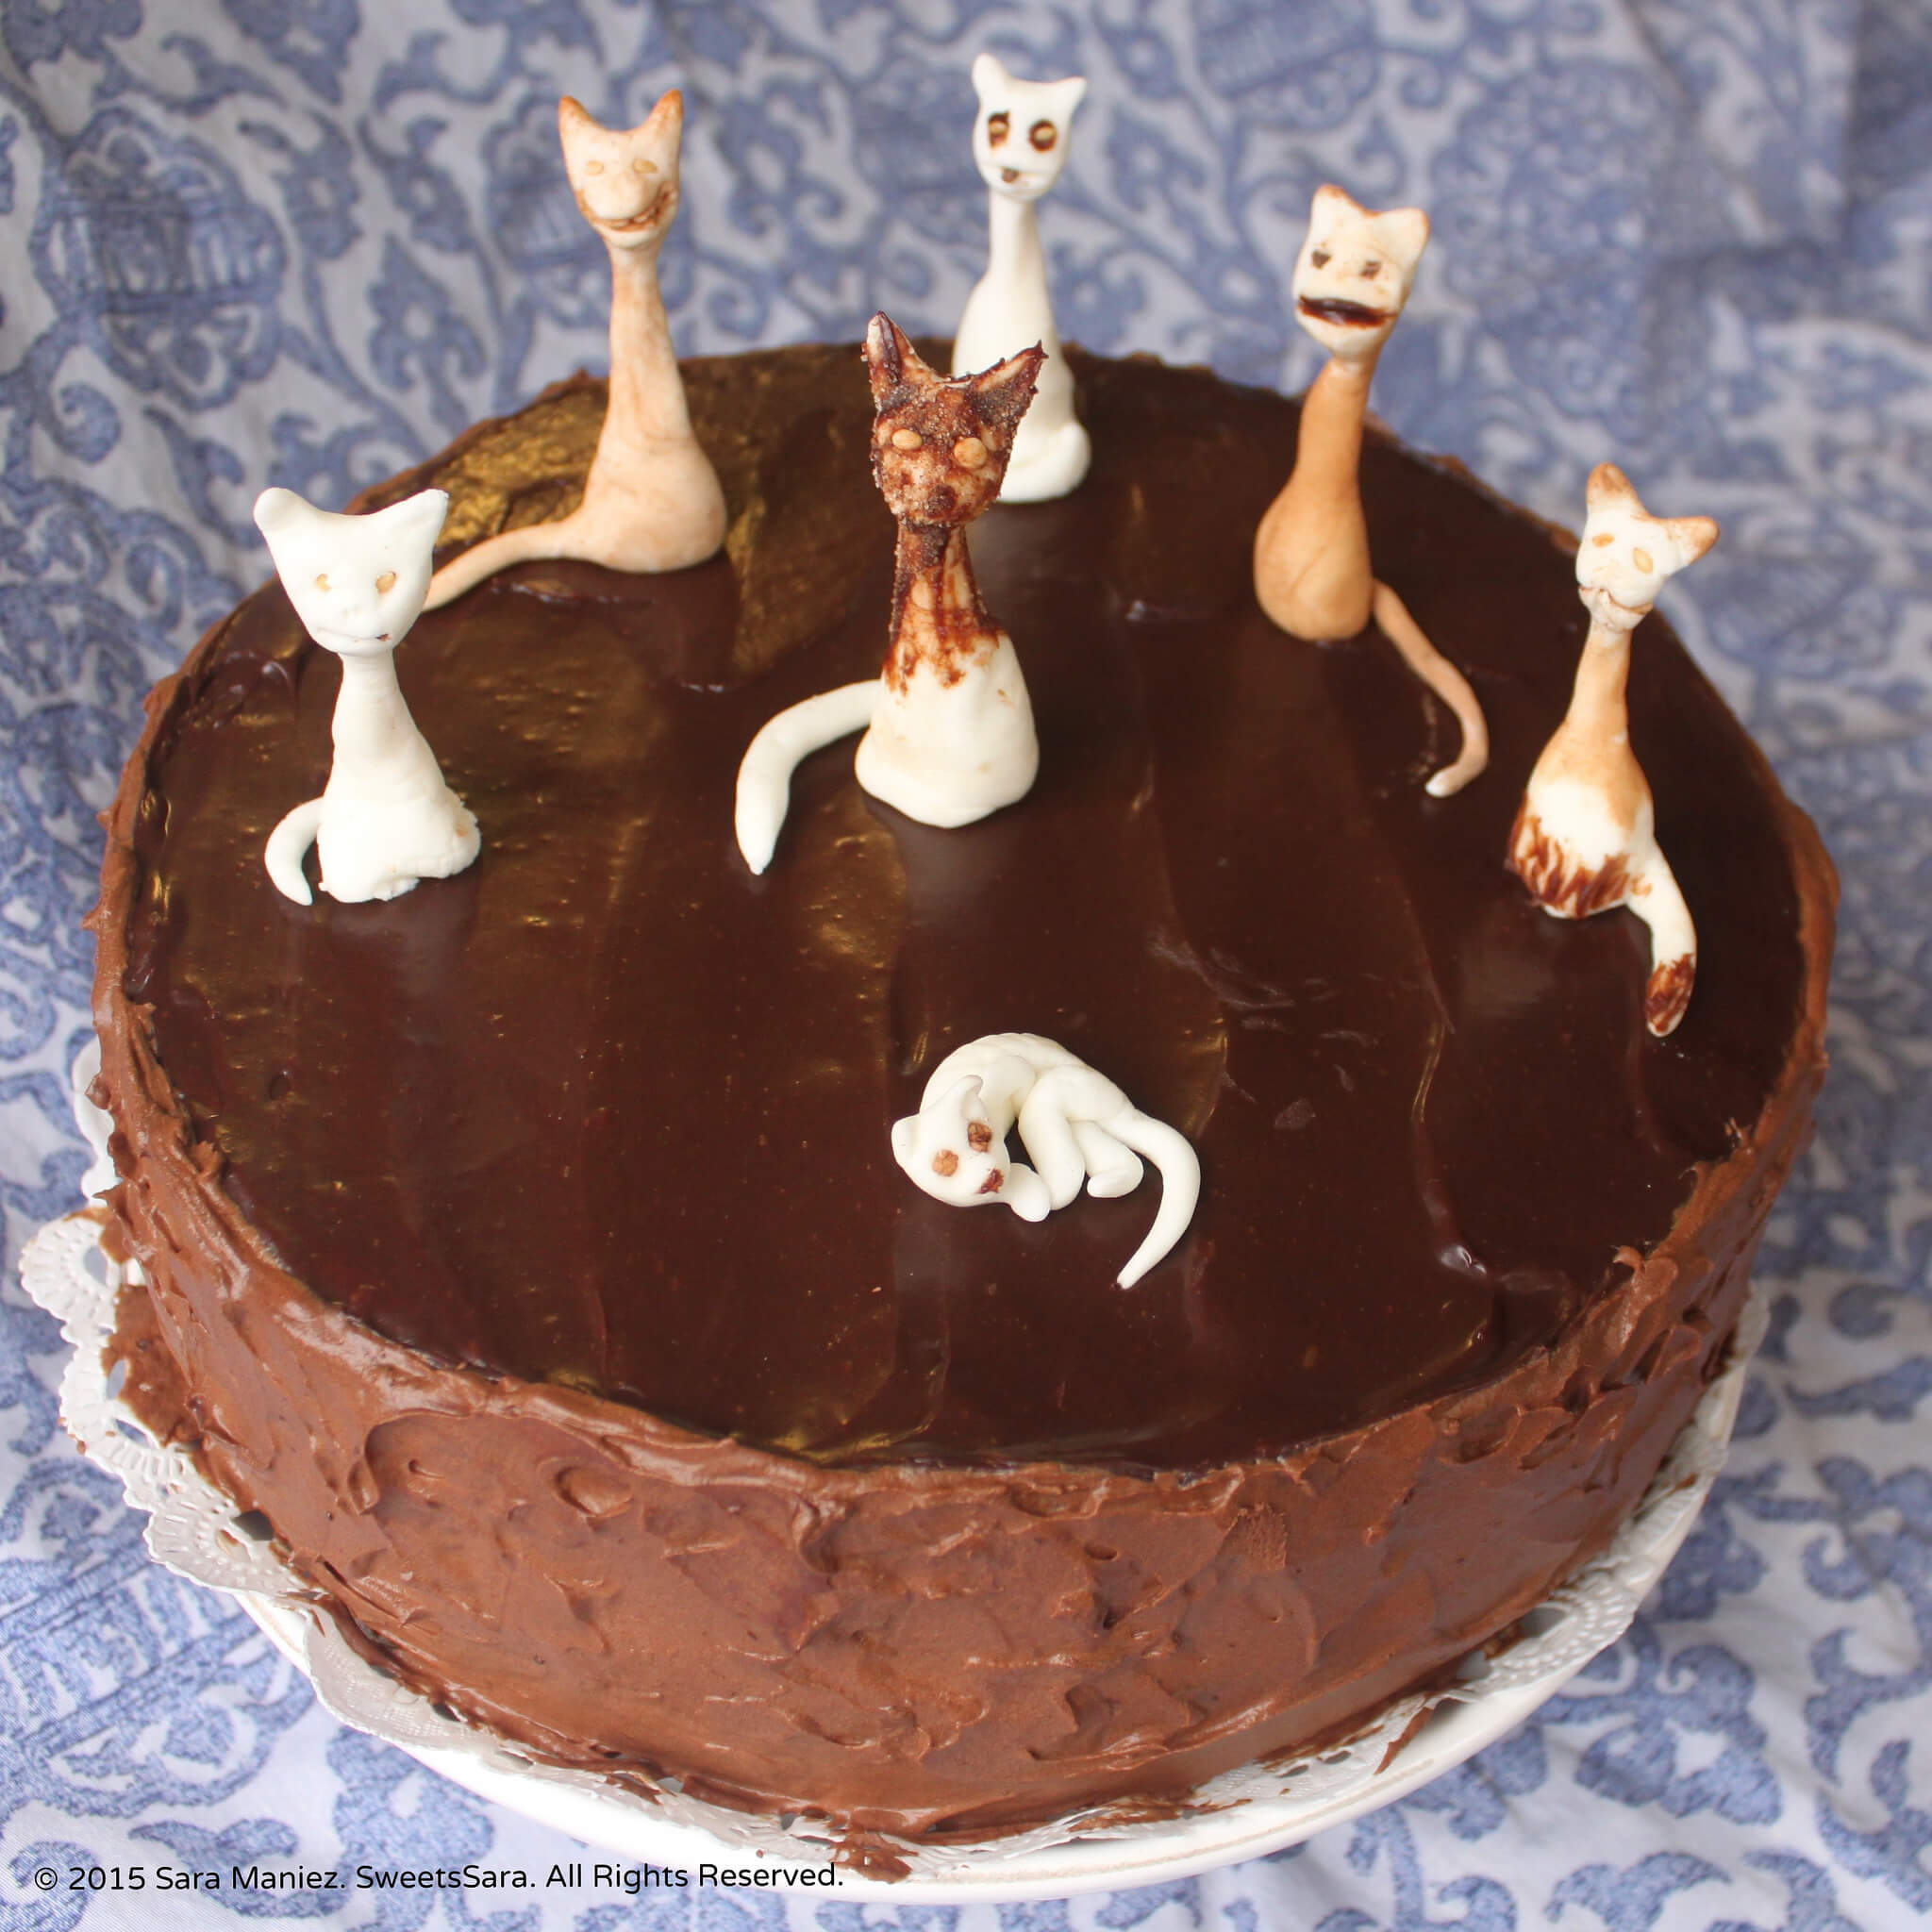 Almond Fondant Felines adorn this chocolate cake with mocha frosting times two.